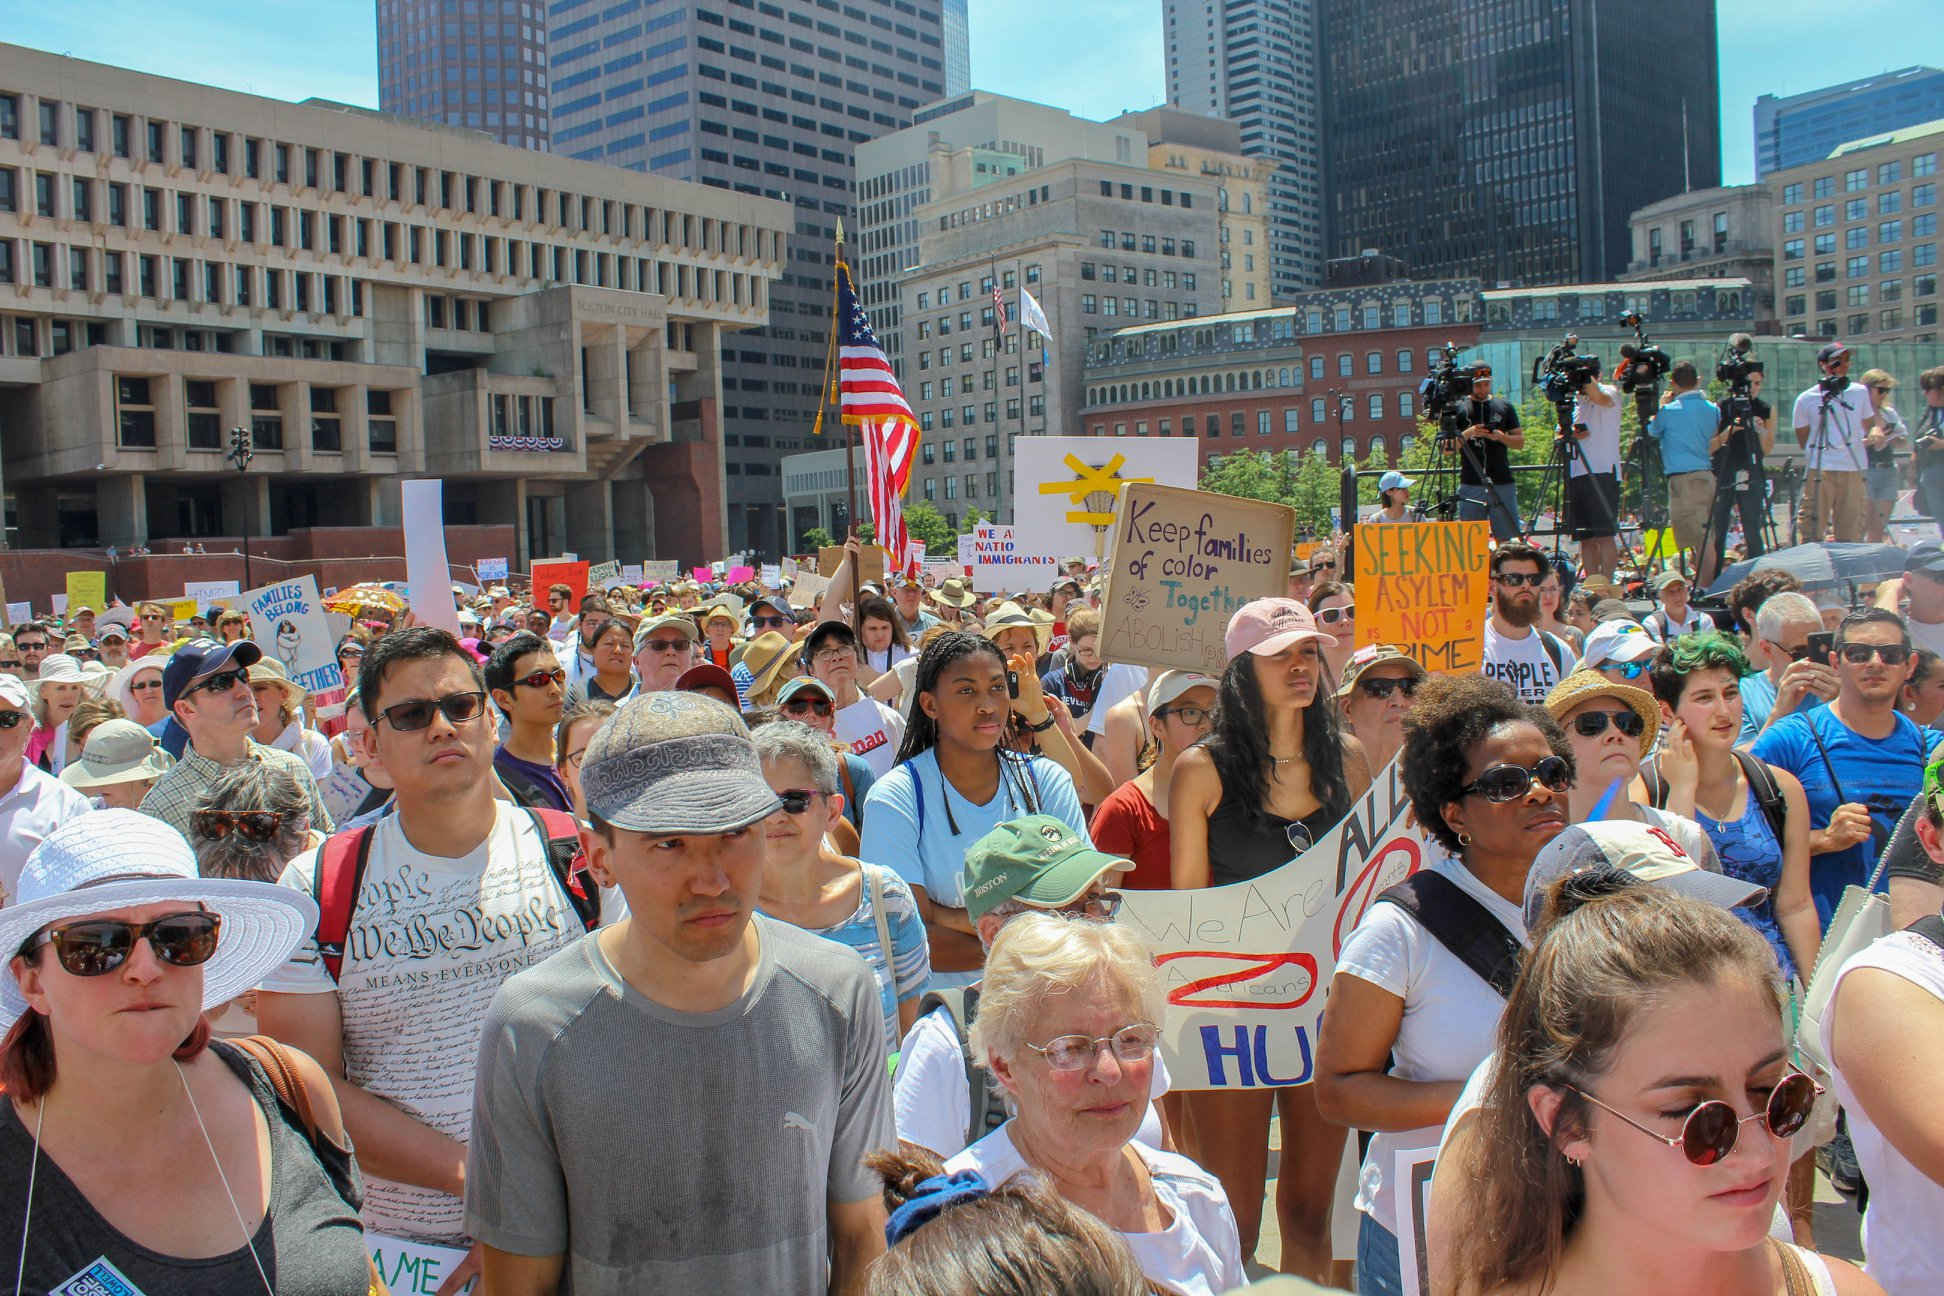 Together & Free Rally, June 30, 2018, City Hall Plaza, Boston, MA